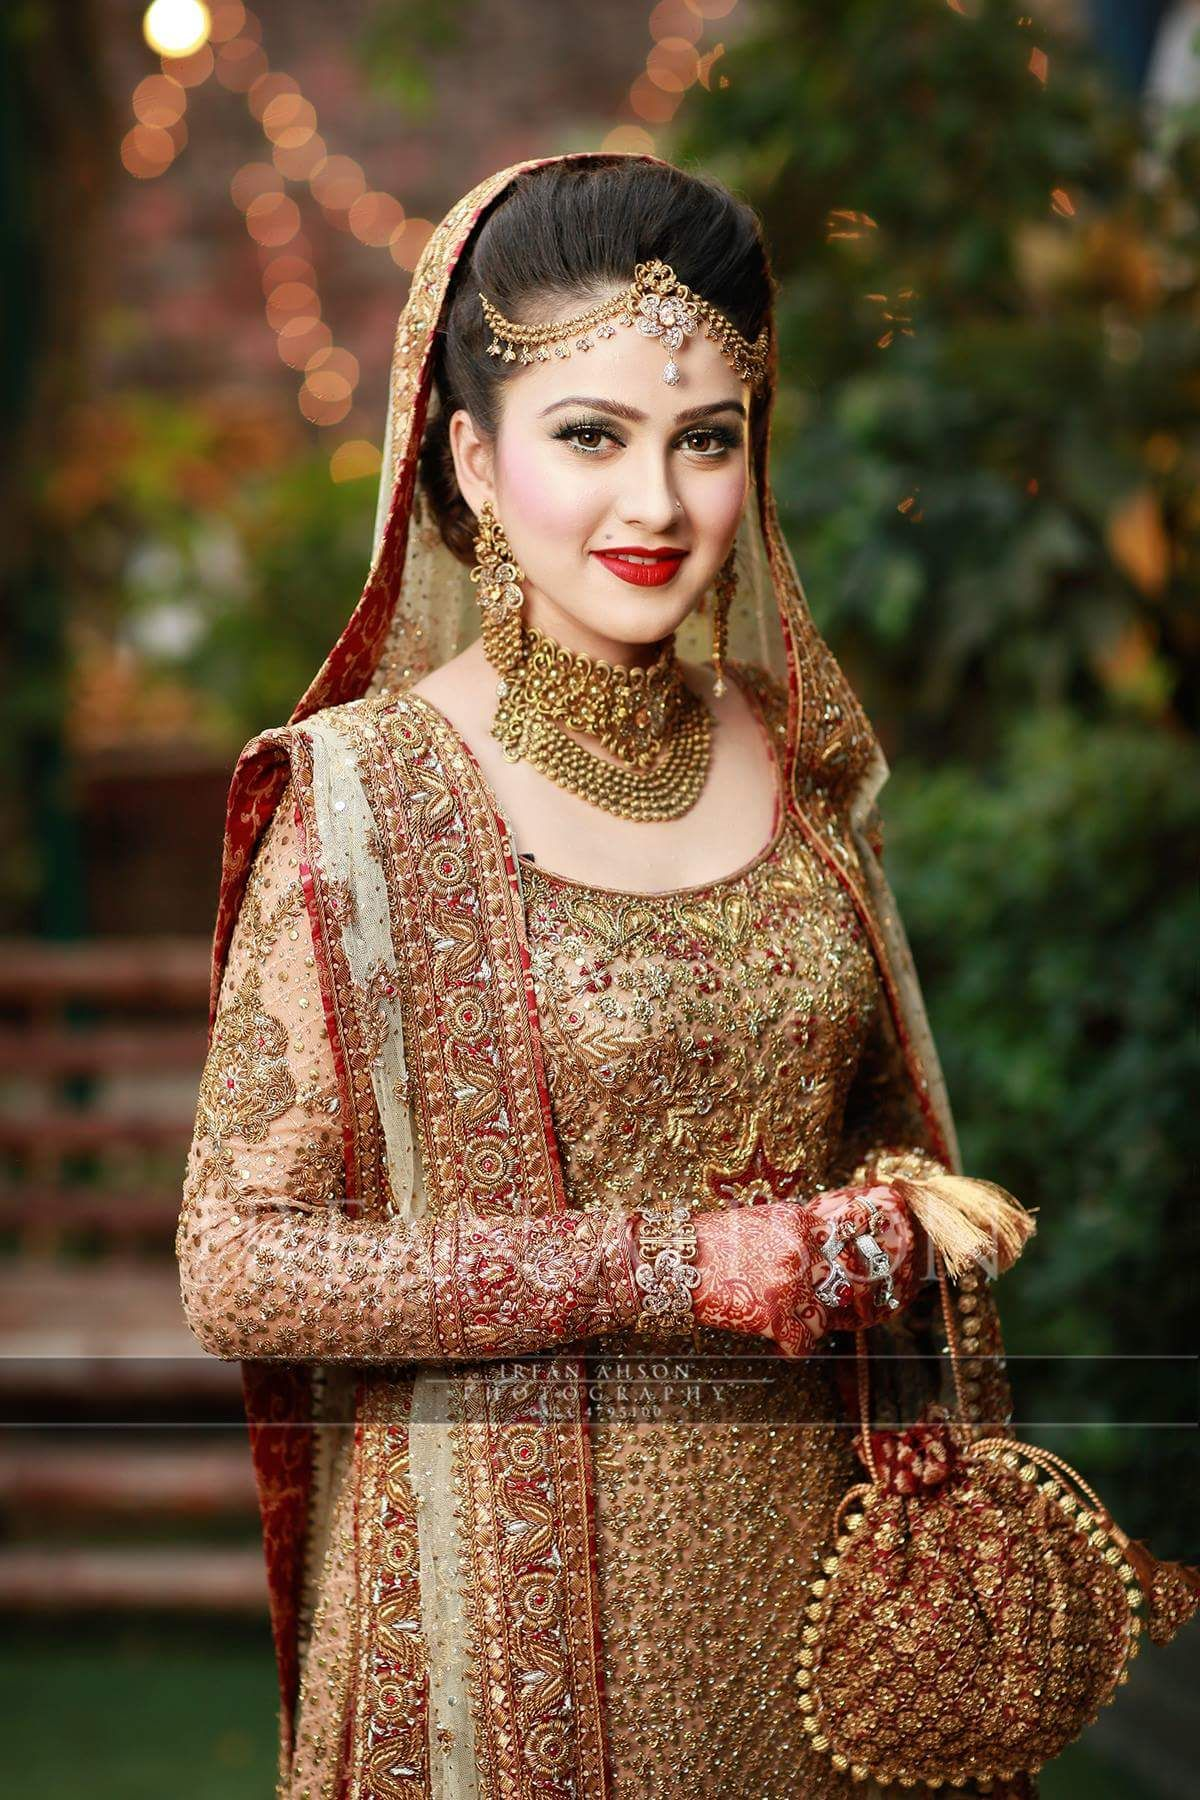 Pretty Pakistani bride … | Pinteres…